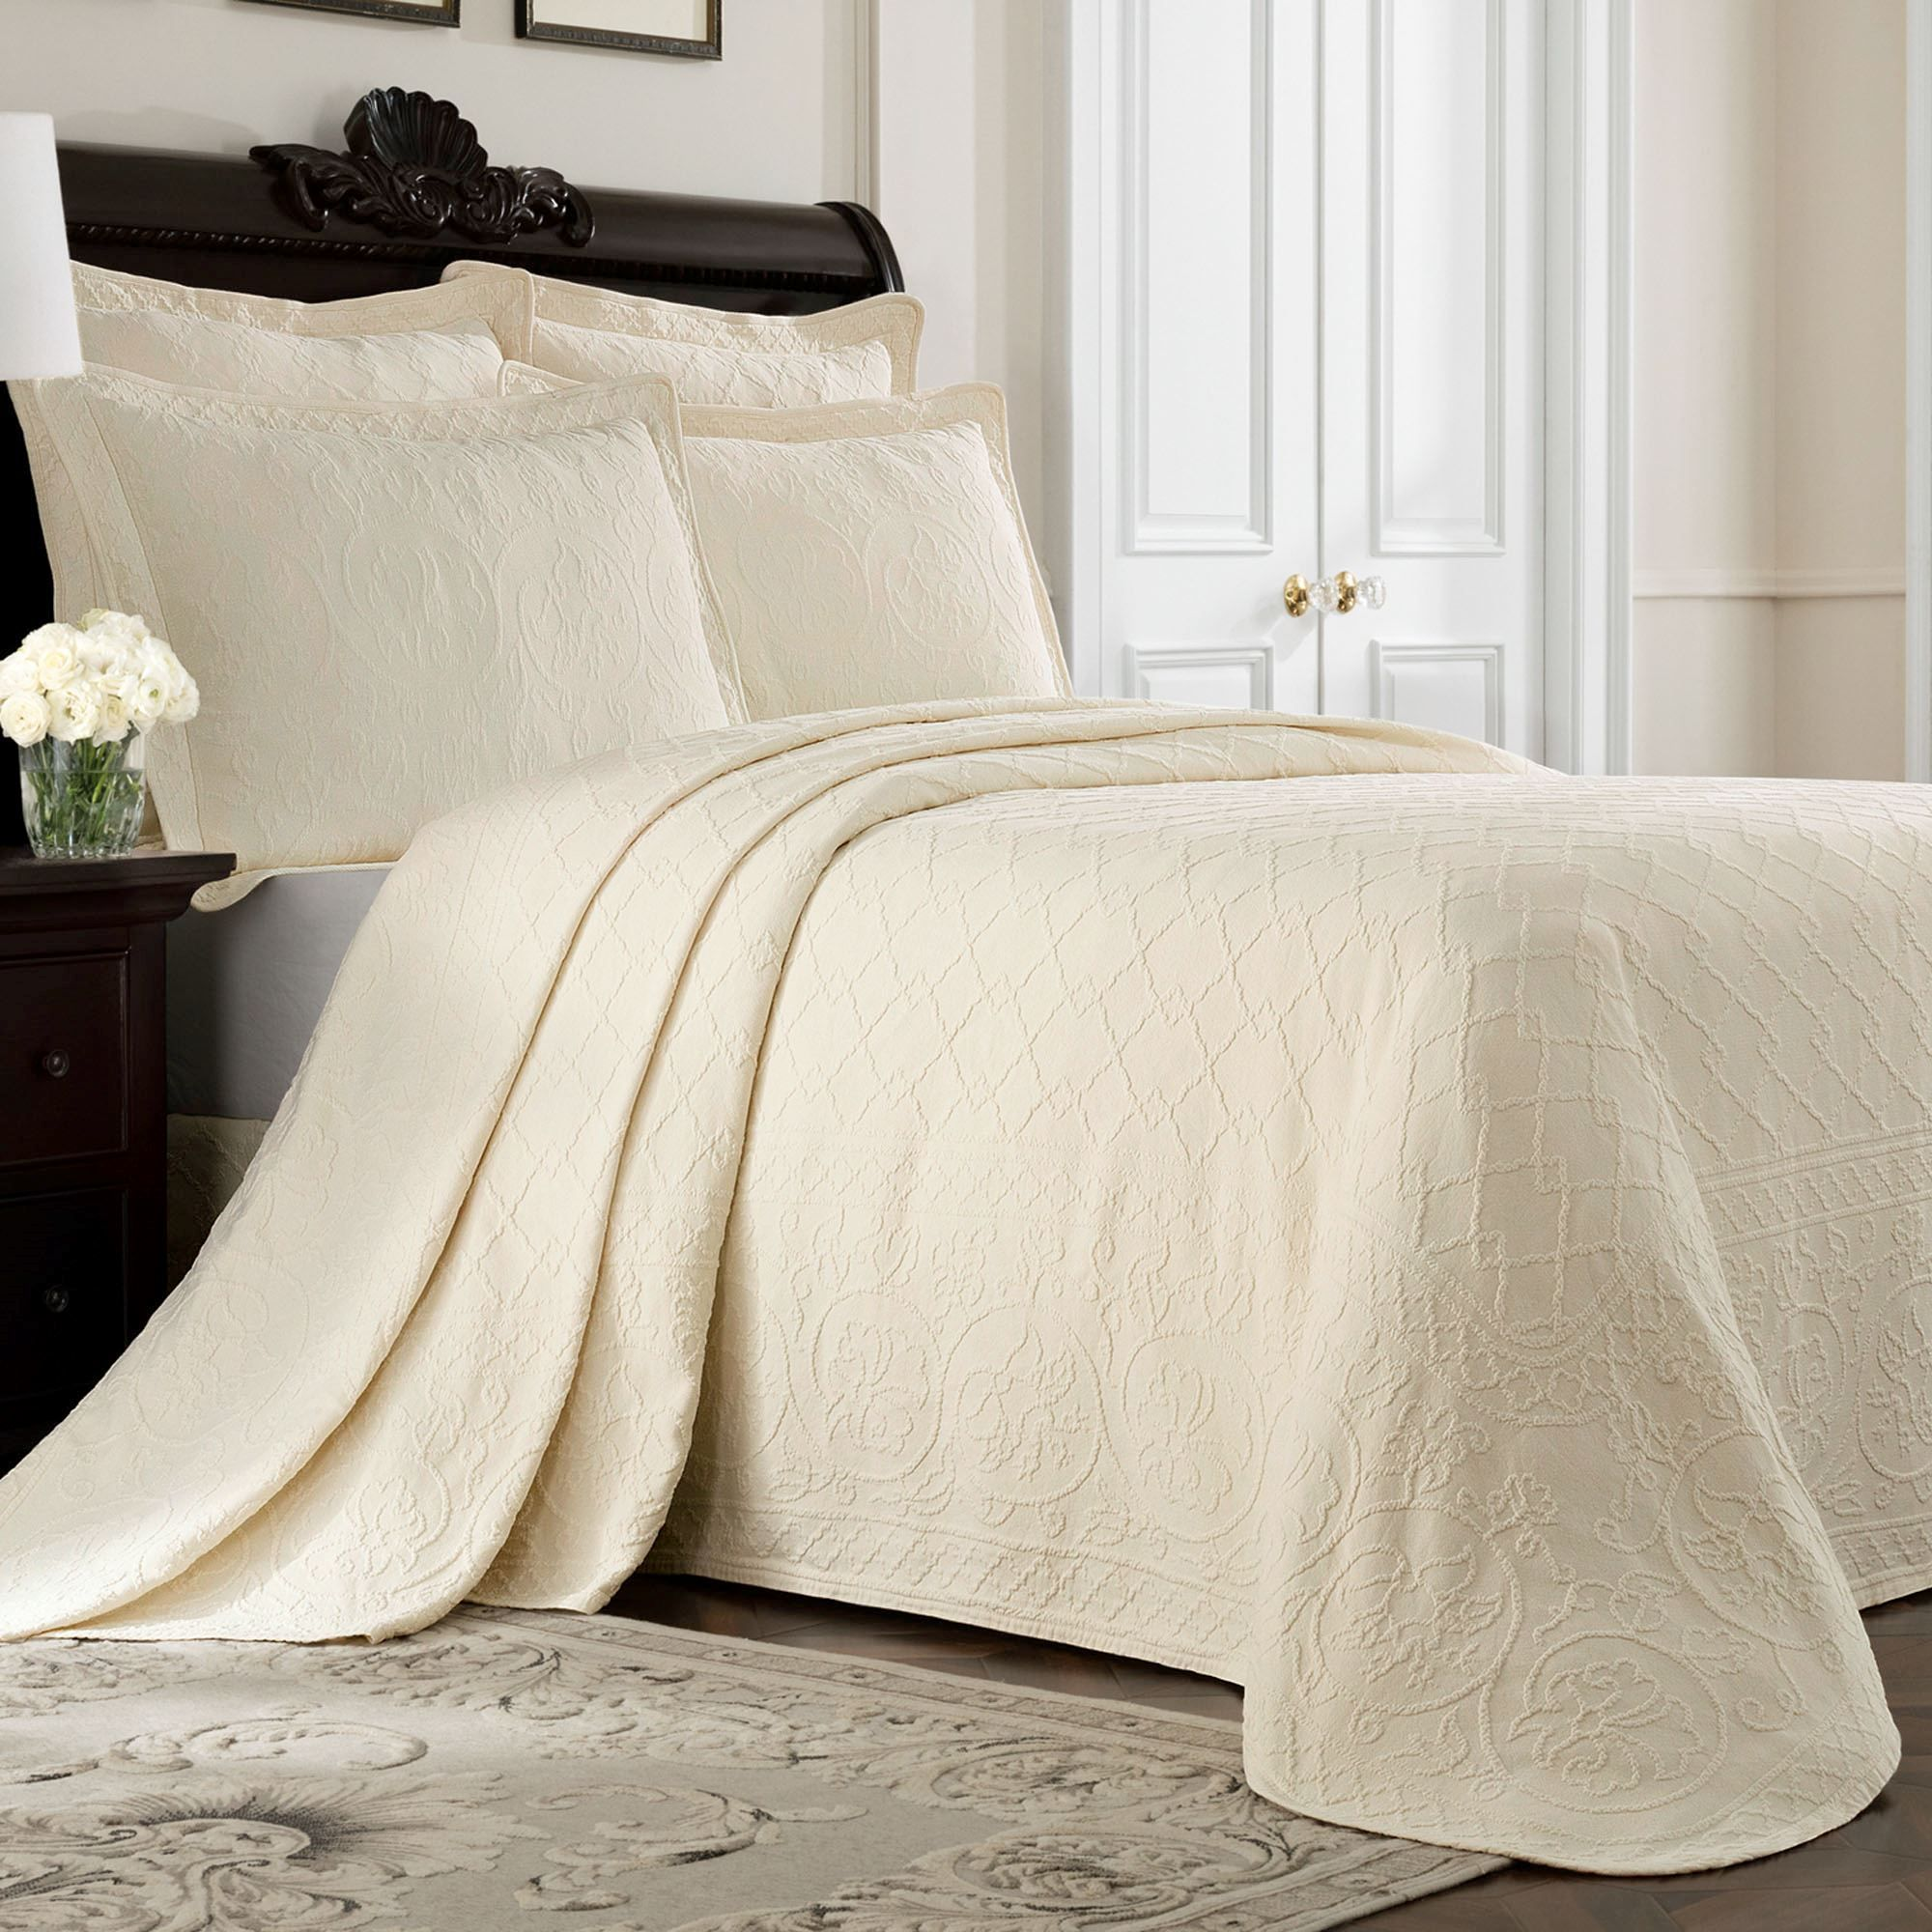 bedding set shop coverlet by pure bed king buy cotton bedspread quilt matelasse white size pieces inches aivedo